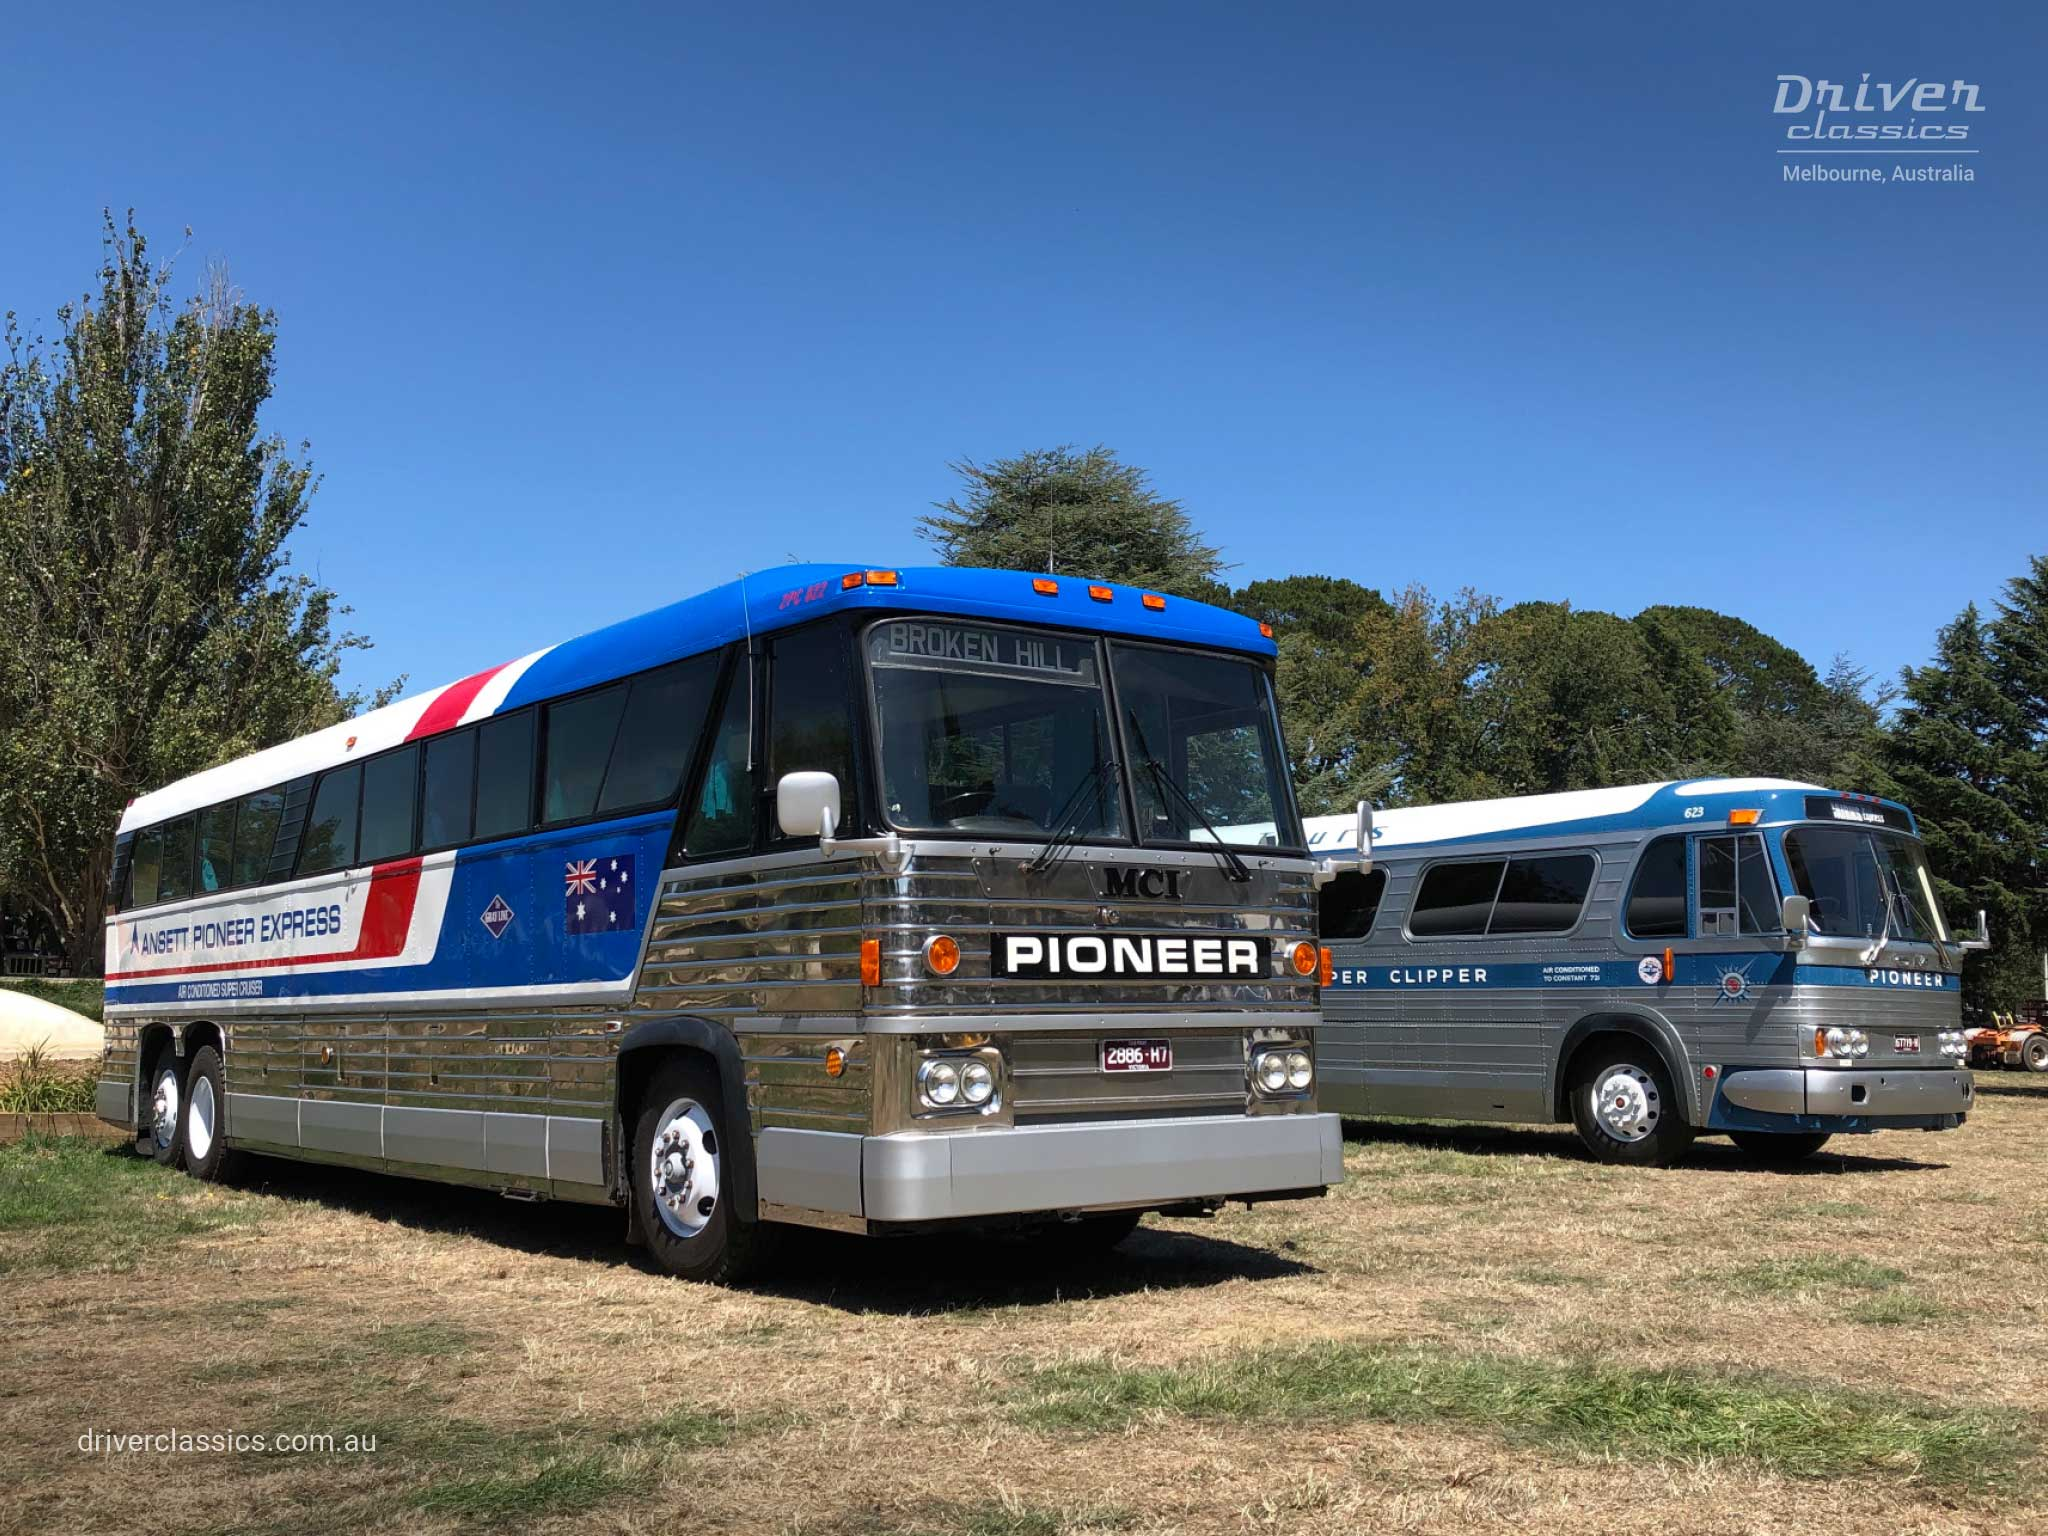 MCI MC8 bus (1976 version), front and road side, with 1961 GM PD4106 bus, at show, Lancefield VIC. Photo taken Feb 2020